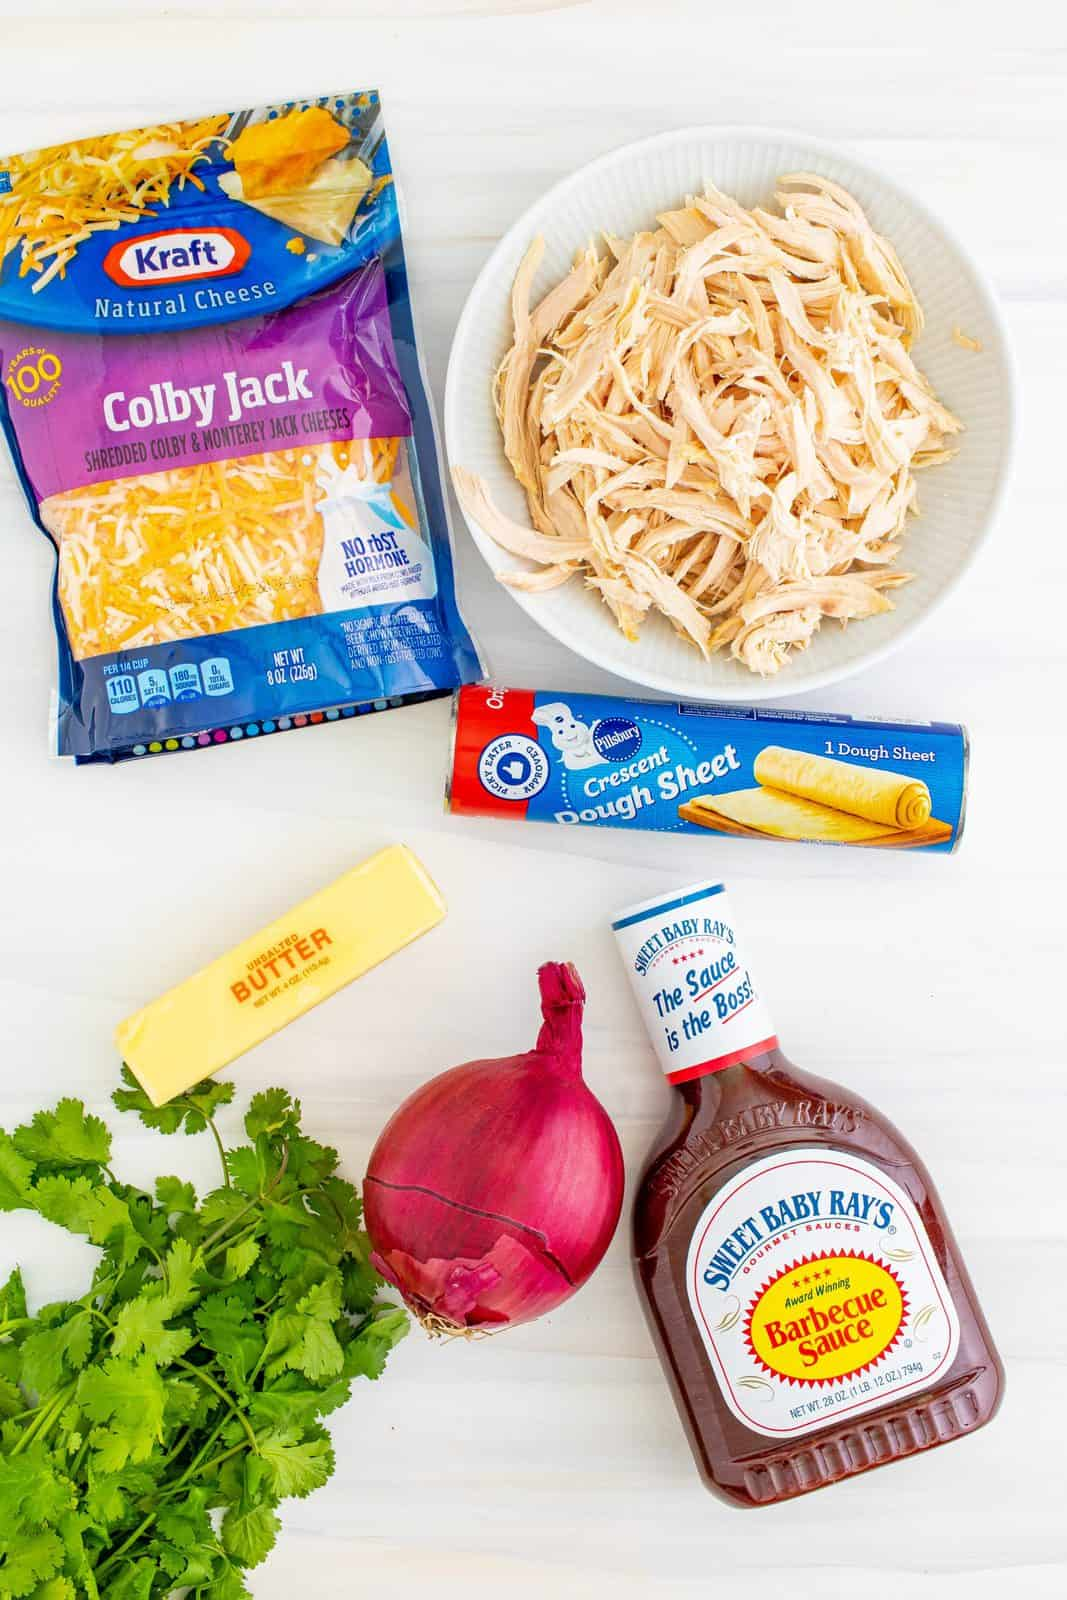 Ingredients needed: unsalted butter, red onion, shredded chicken, bbq sauce, cilantro, crescent roll dough sheet and colby jack cheese.